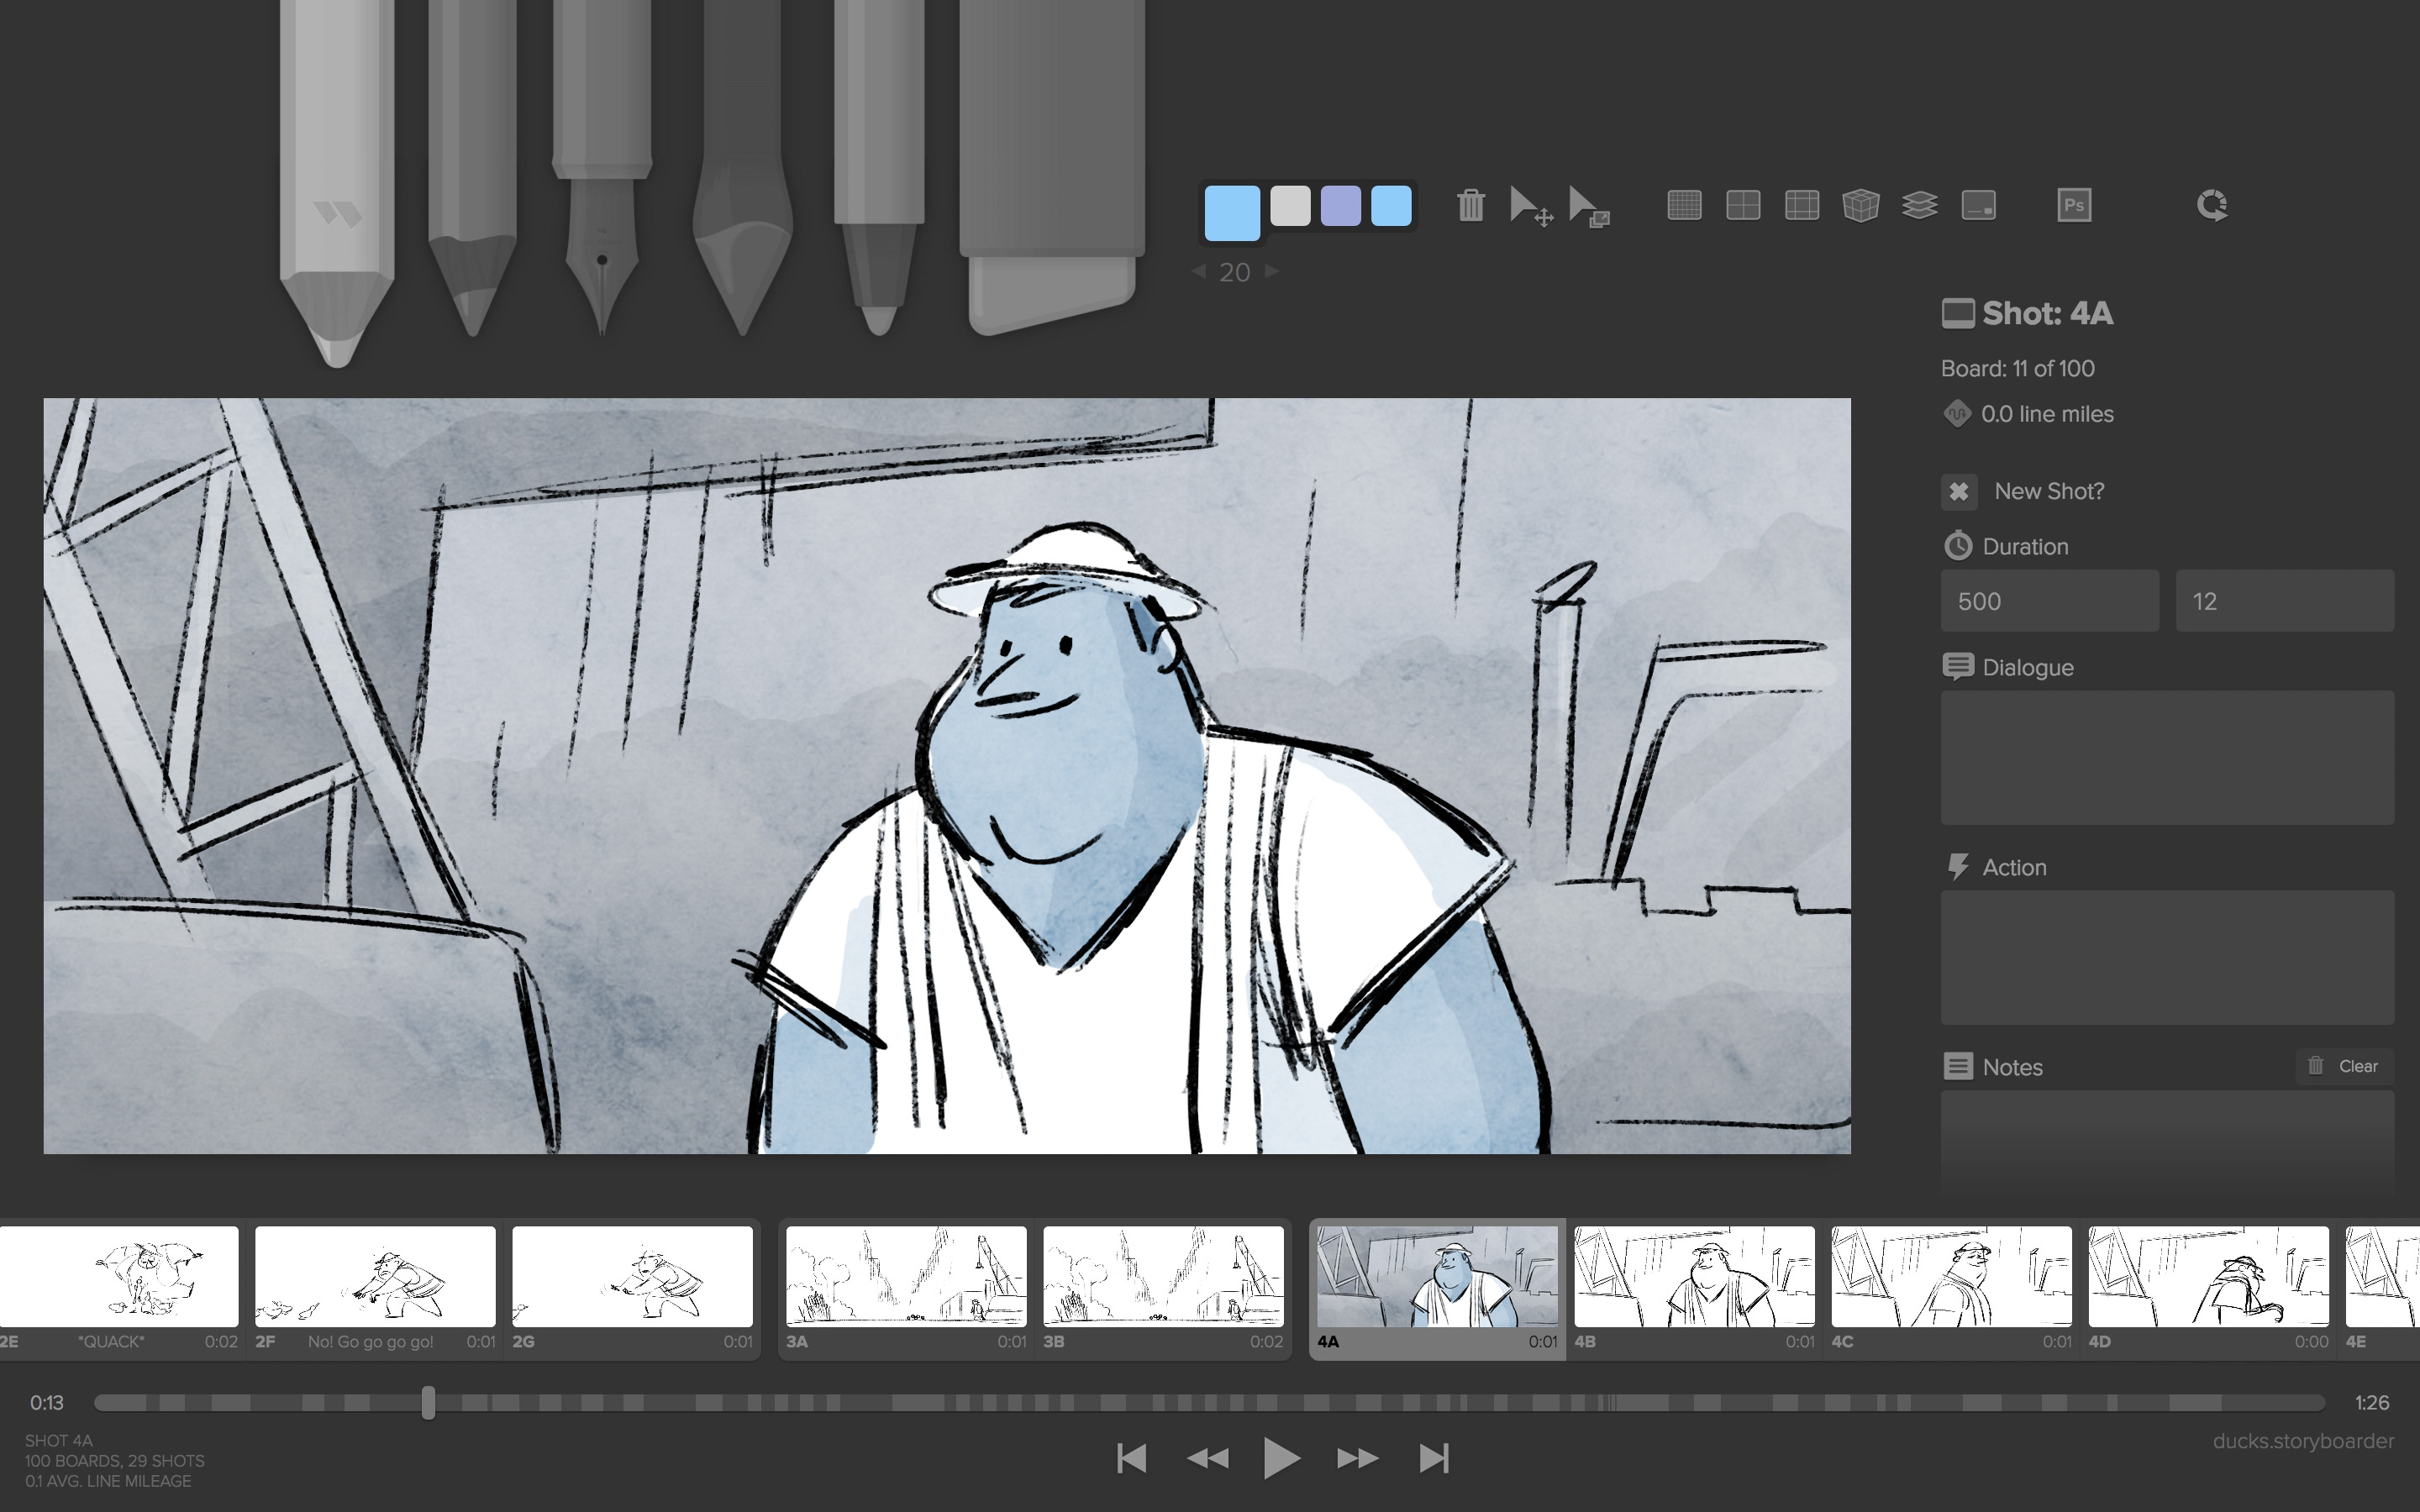 Storyboarder - The best and easiest way to storyboard